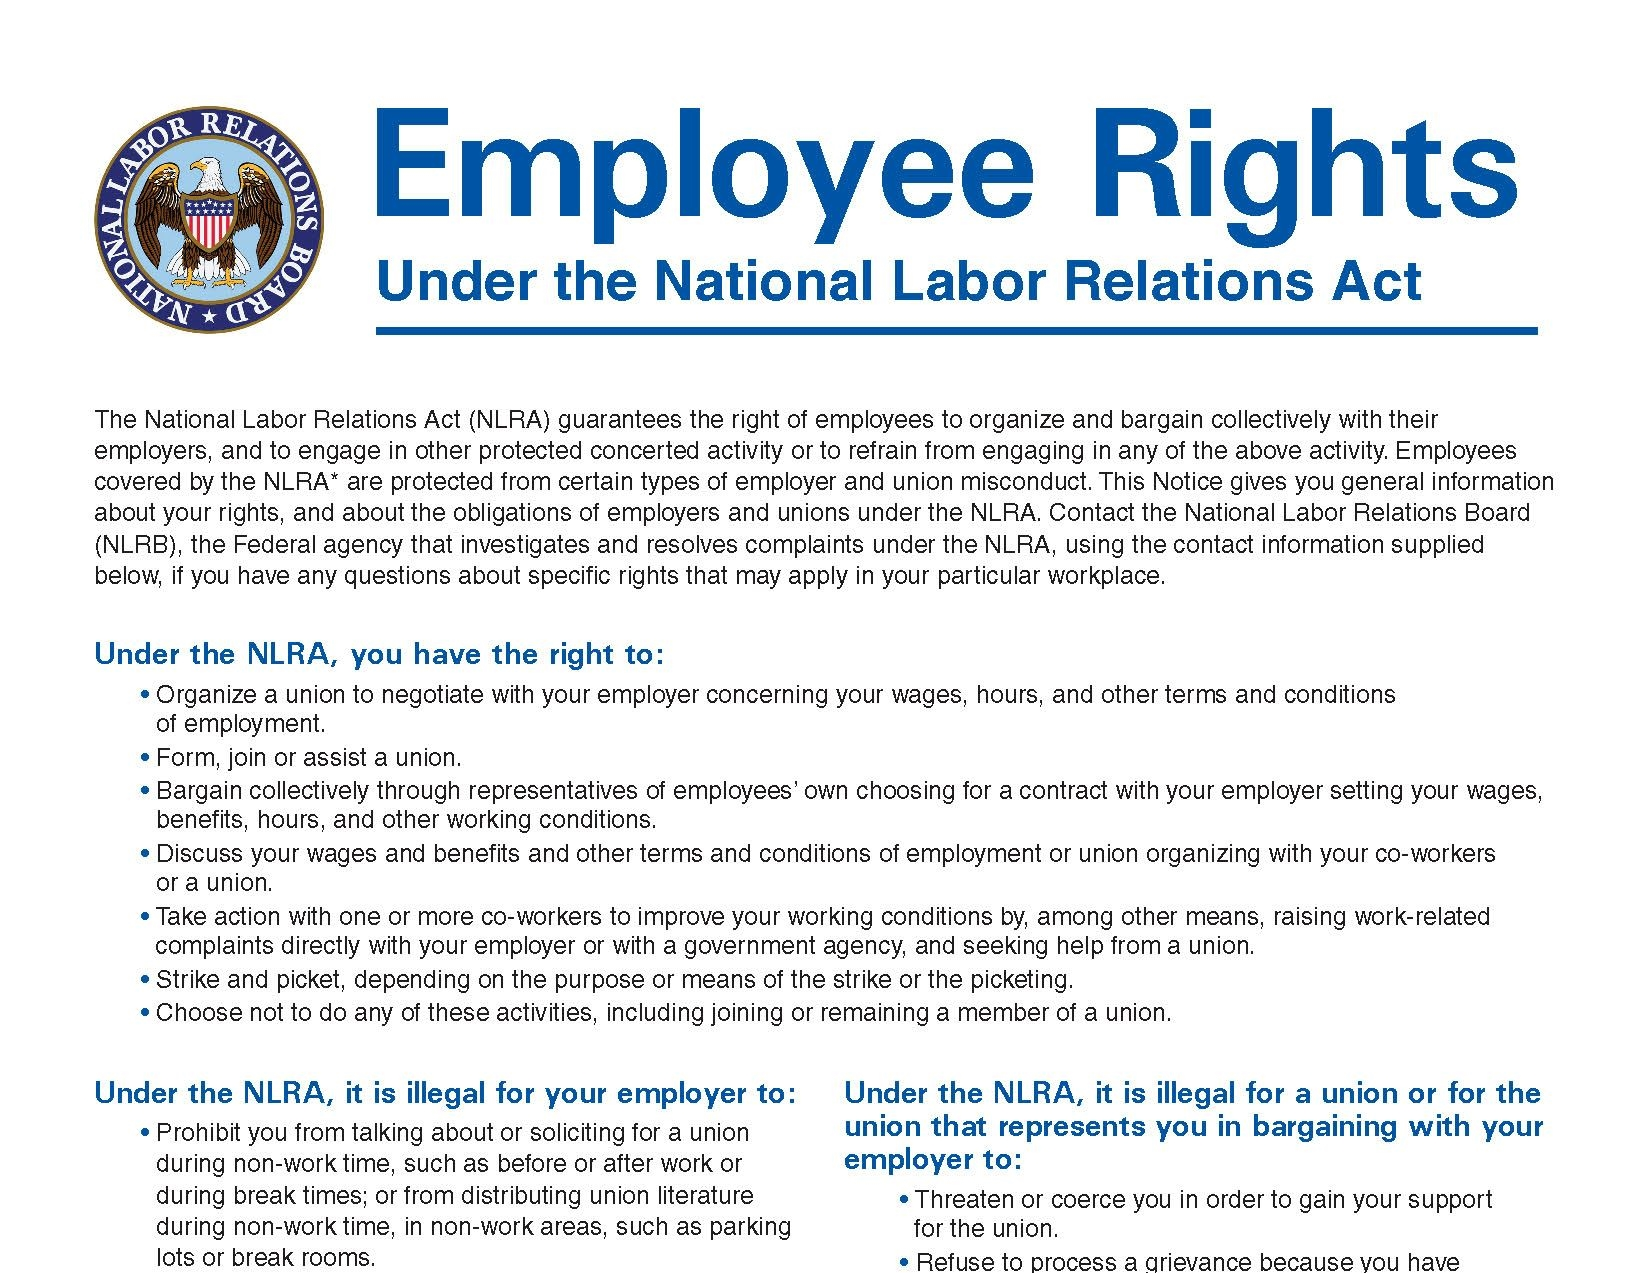 employment rights Employment law whether you are entering the job market for the first time or were recently terminated, it is important to understand your rights as a worker both federal and state governments have enacted a wide range of employment laws protecting employees from discriminatory treatment, unfair labor practices, unsafe work conditions, and more.